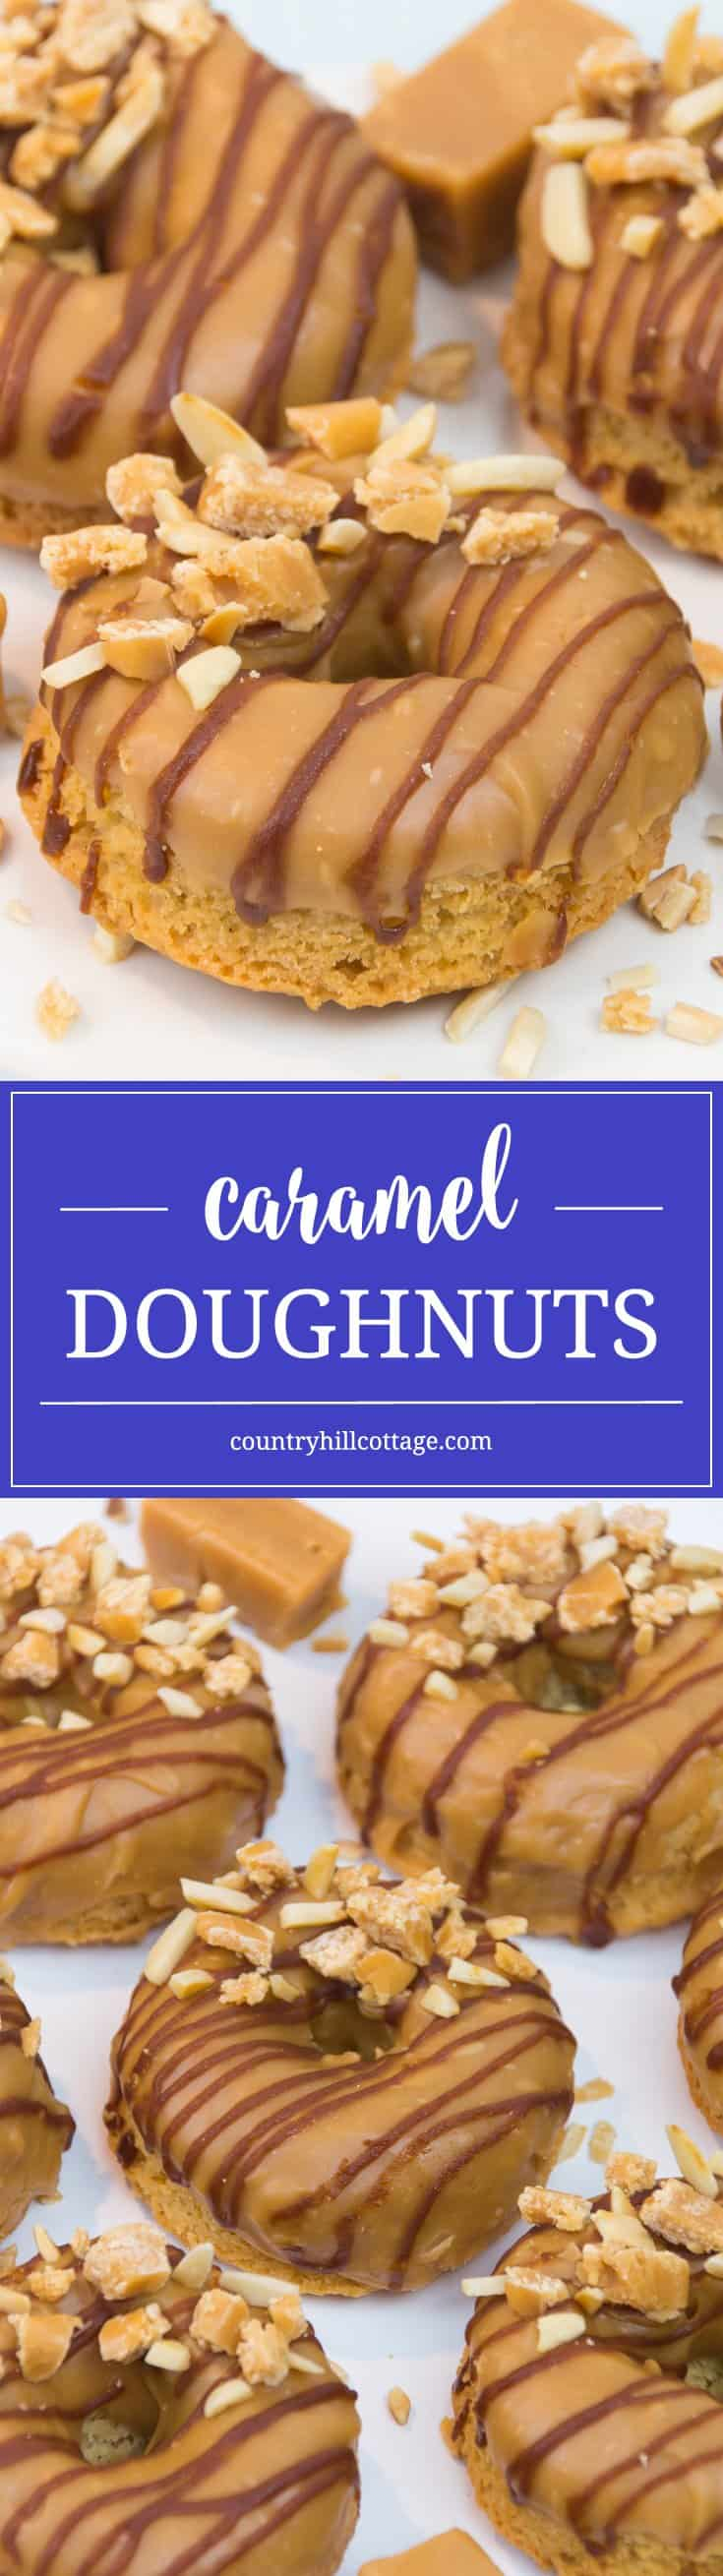 Let's bake caramel doughnuts with a sticky-sweet glaze! First, we whip up a brown sugar batter, and then make a rich and creamy caramel glaze from scratch. #caramel #donuts #recipe | countryhillcottage.com